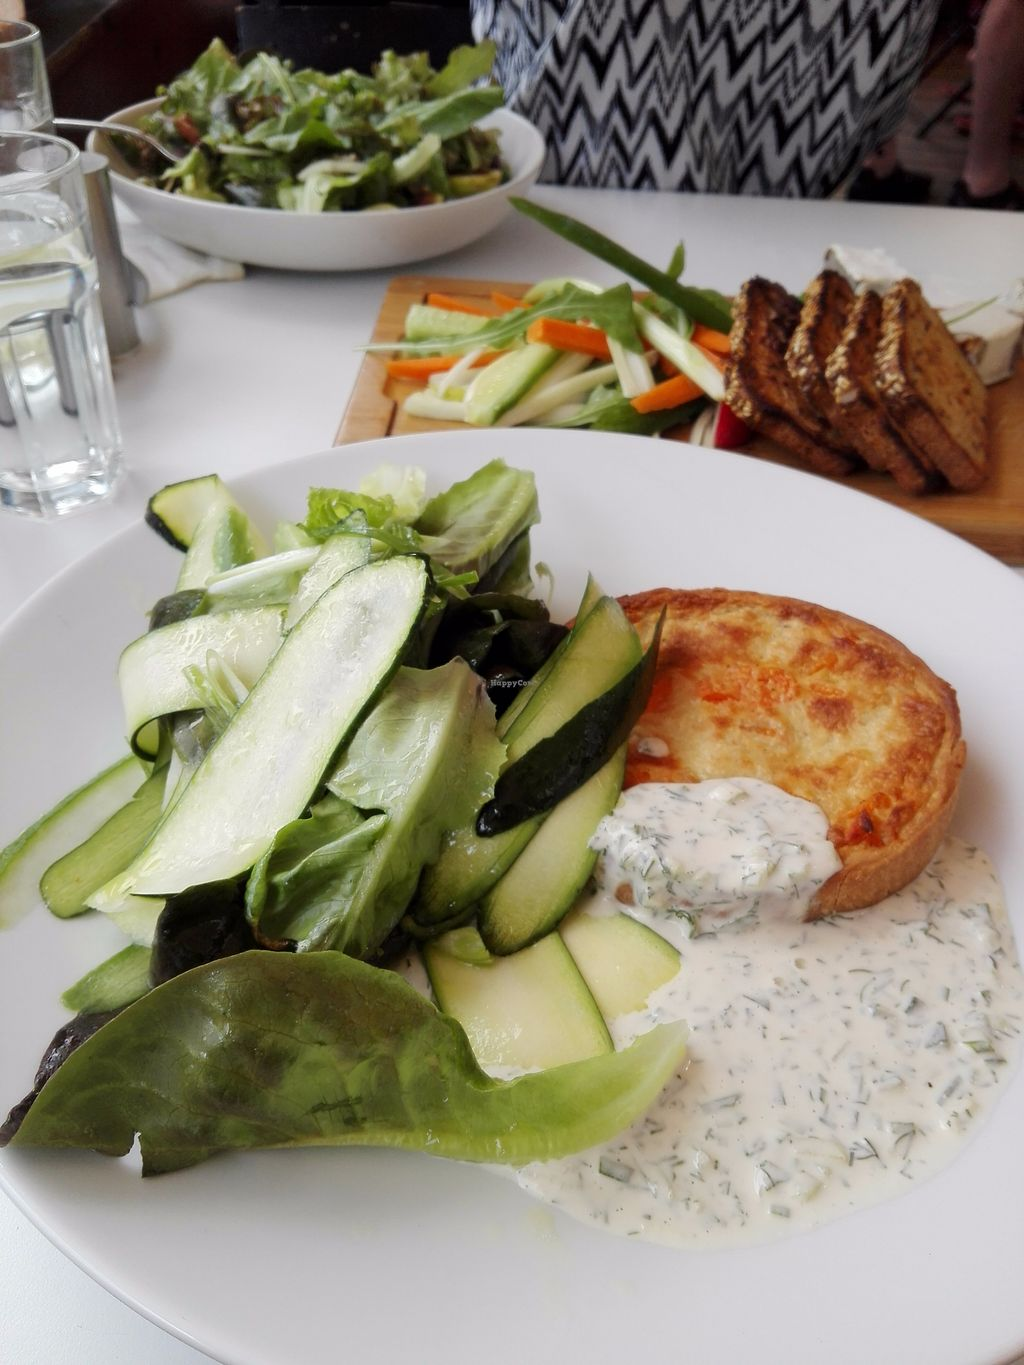 """Photo of Anastasia  by <a href=""""/members/profile/ElisaGR"""">ElisaGR</a> <br/>Quiche with sweet potato and """"Tzatziki"""" <br/> September 11, 2017  - <a href='/contact/abuse/image/47650/303454'>Report</a>"""